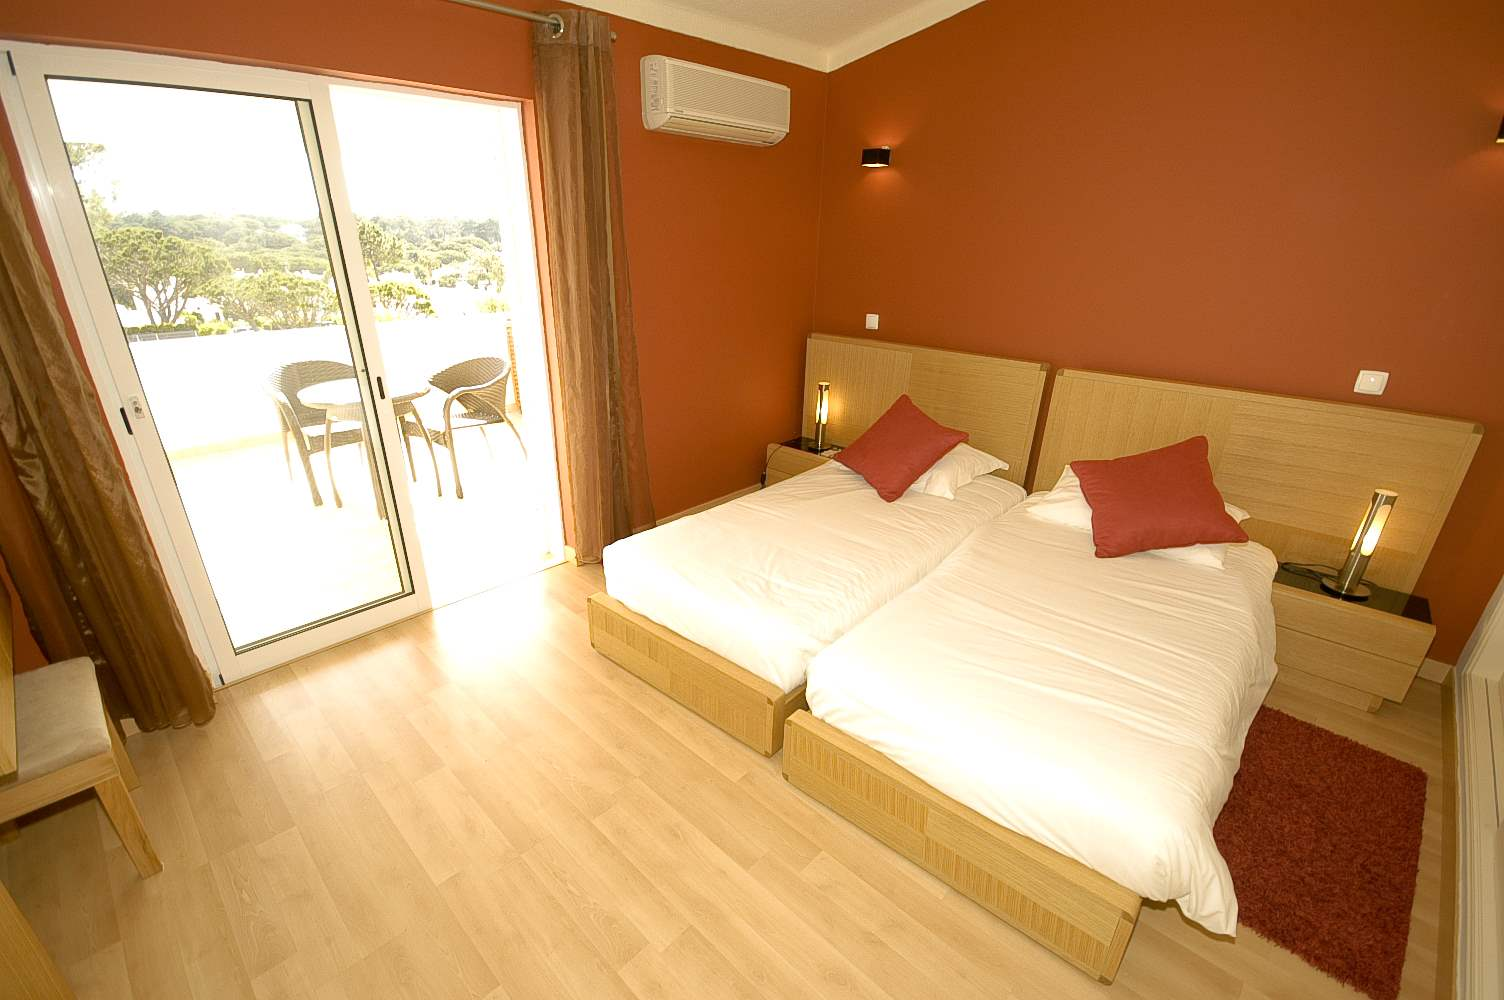 Apartment Azalea 2, 2 bedroom apartment in Vale do Lobo, Algarve Photo #7